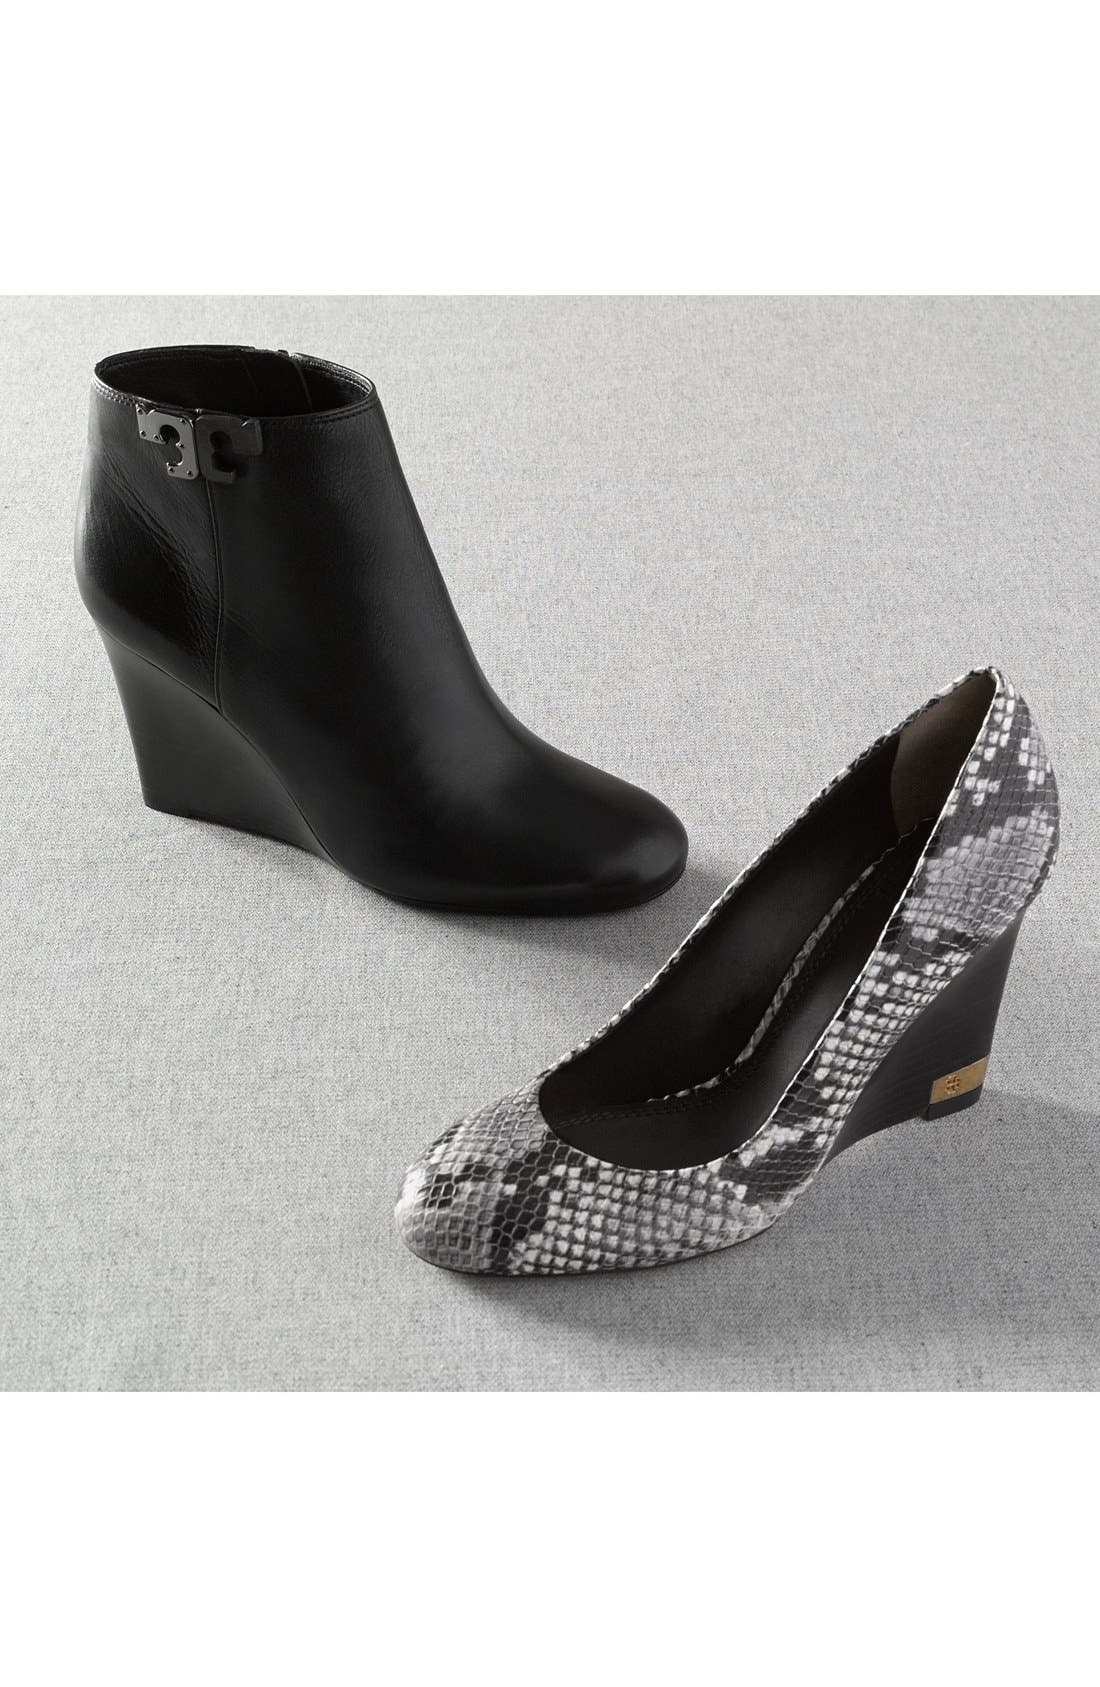 'Lowell' Wedge Bootie,                             Alternate thumbnail 5, color,                             001